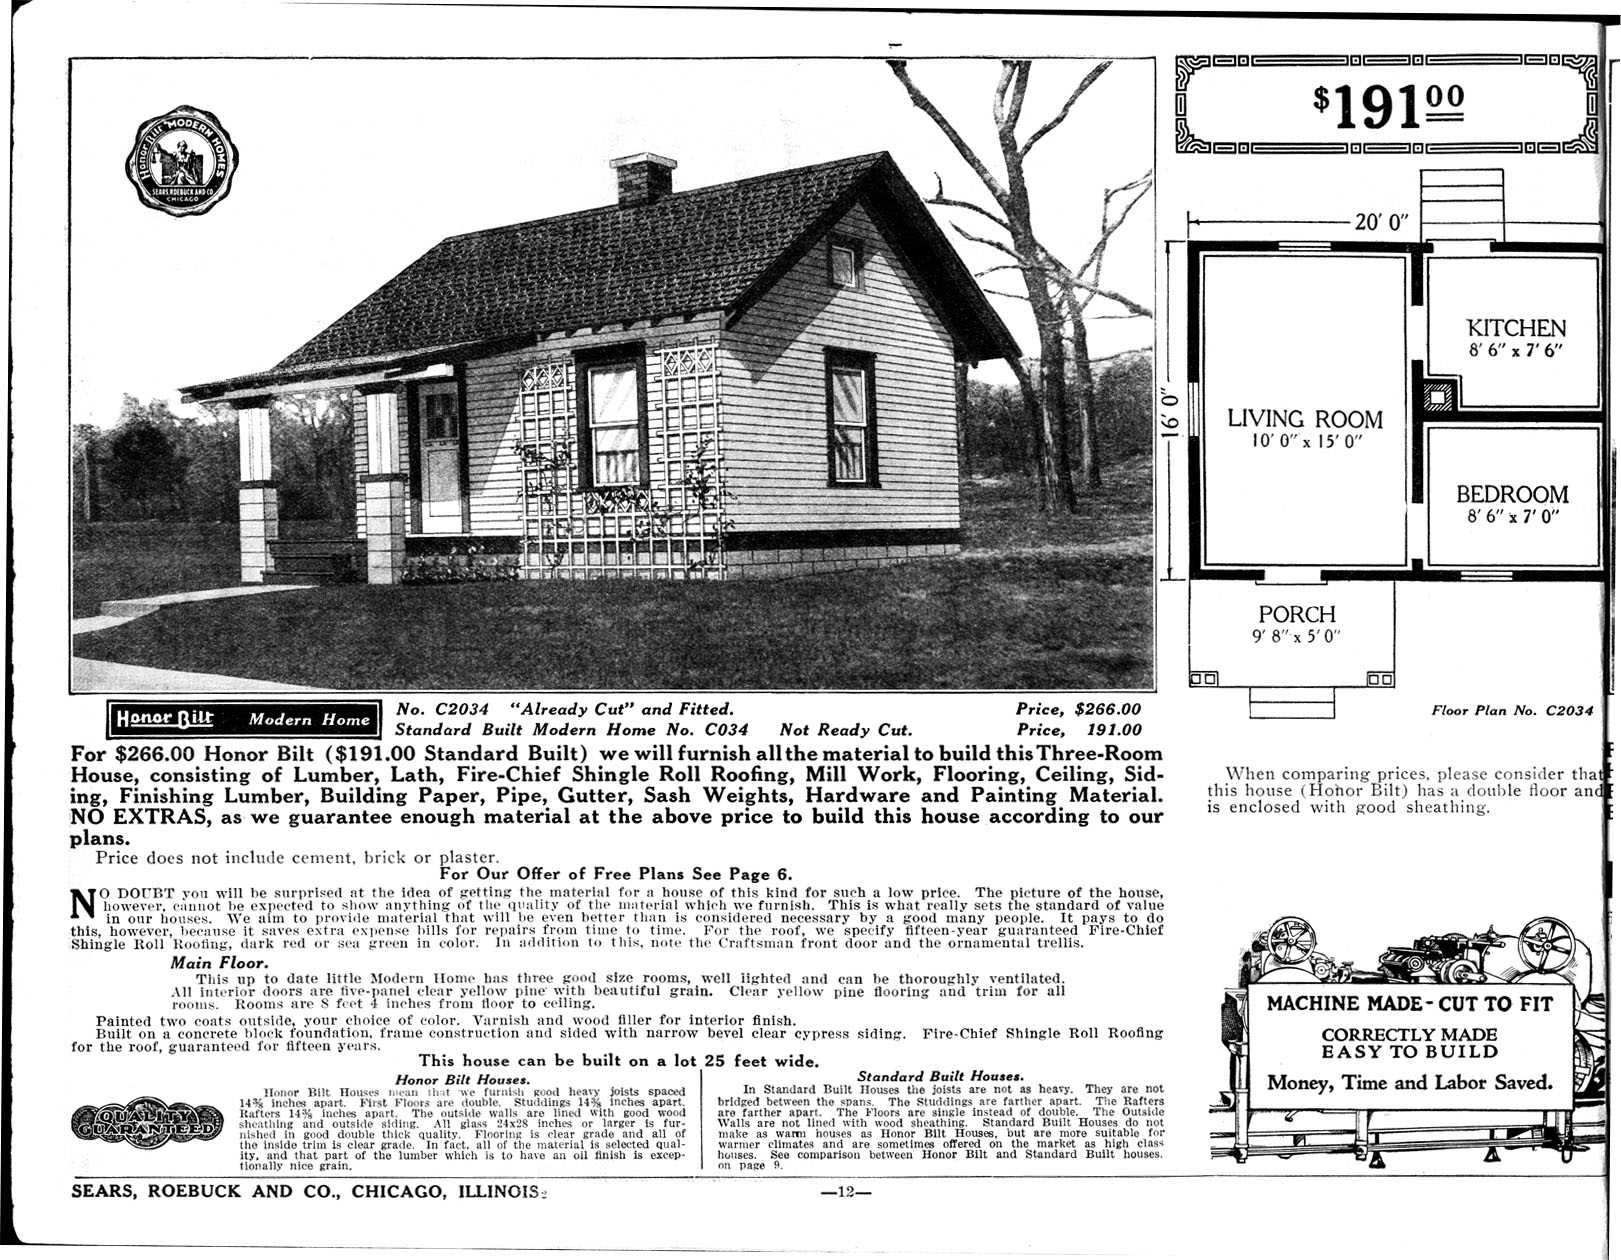 Chicago Bungalow Floor Plans Kc And Ruthie Sears Catalog House Circa 1920